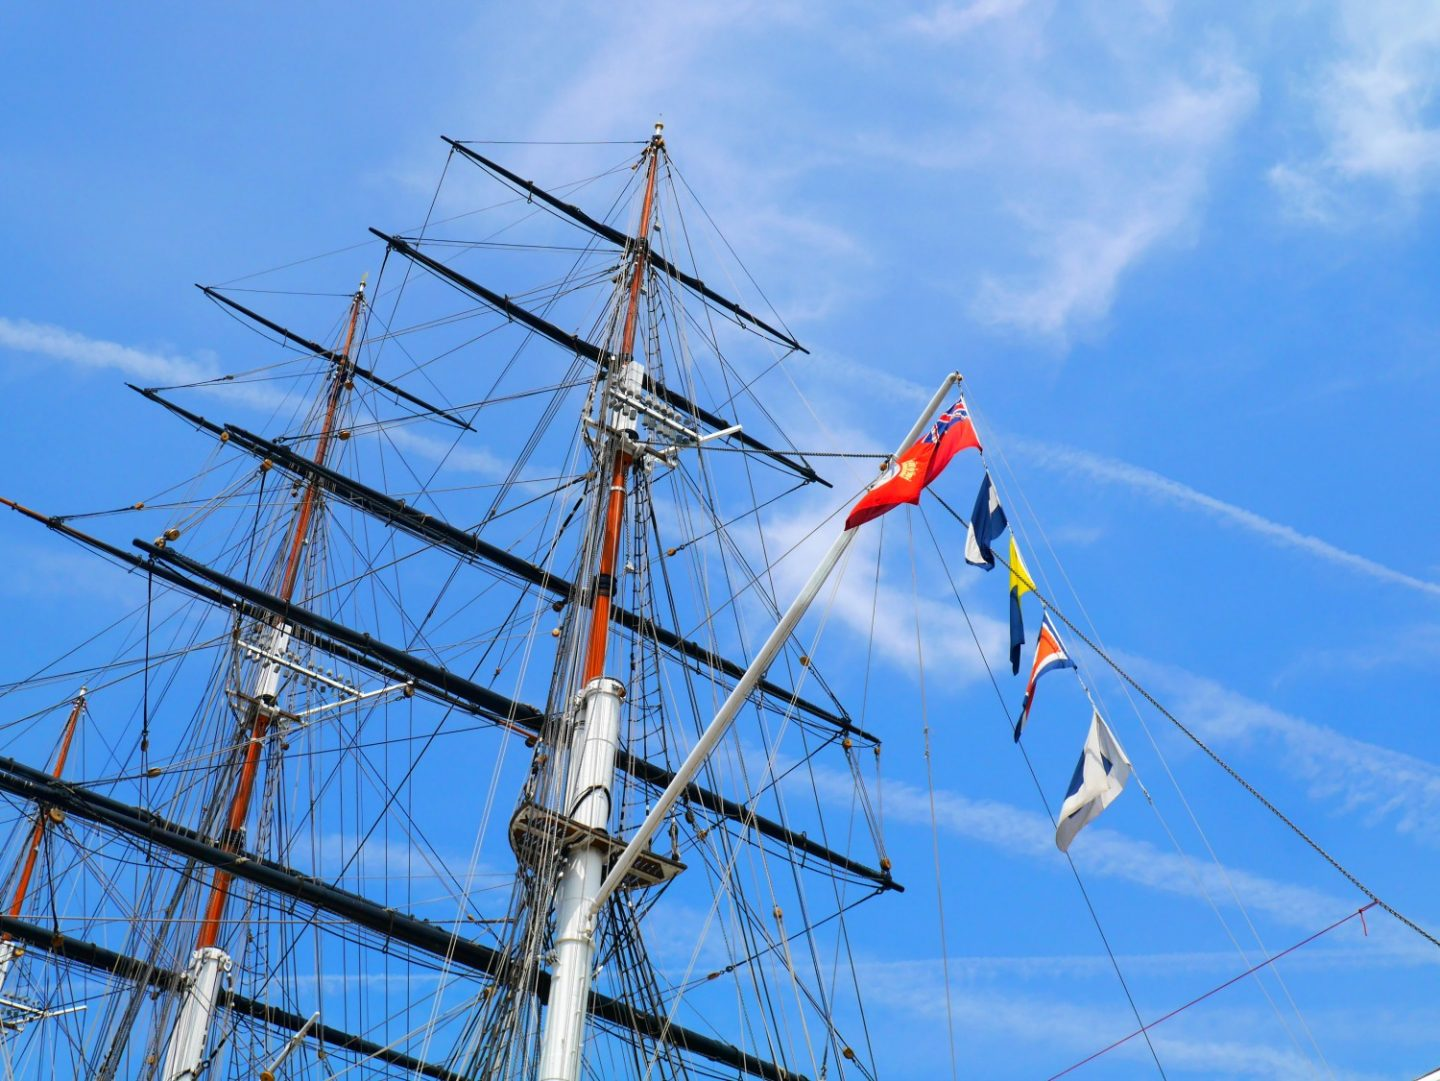 Five questions my children asked on our trip to the Cutty Sark